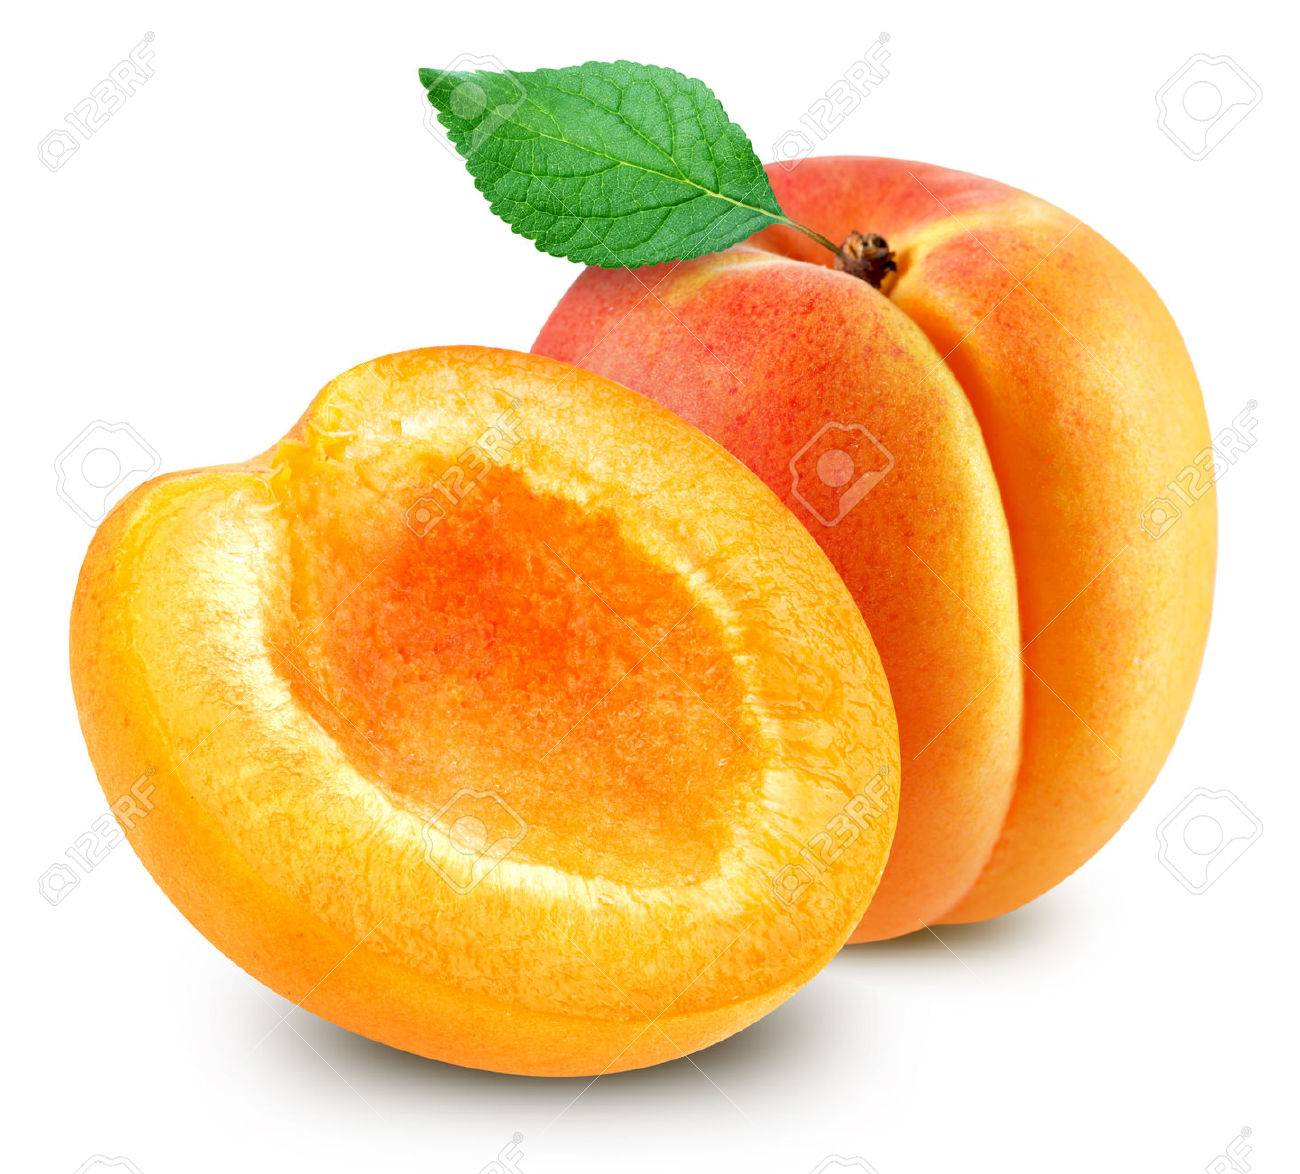 apricot fruits isolated - 77097417